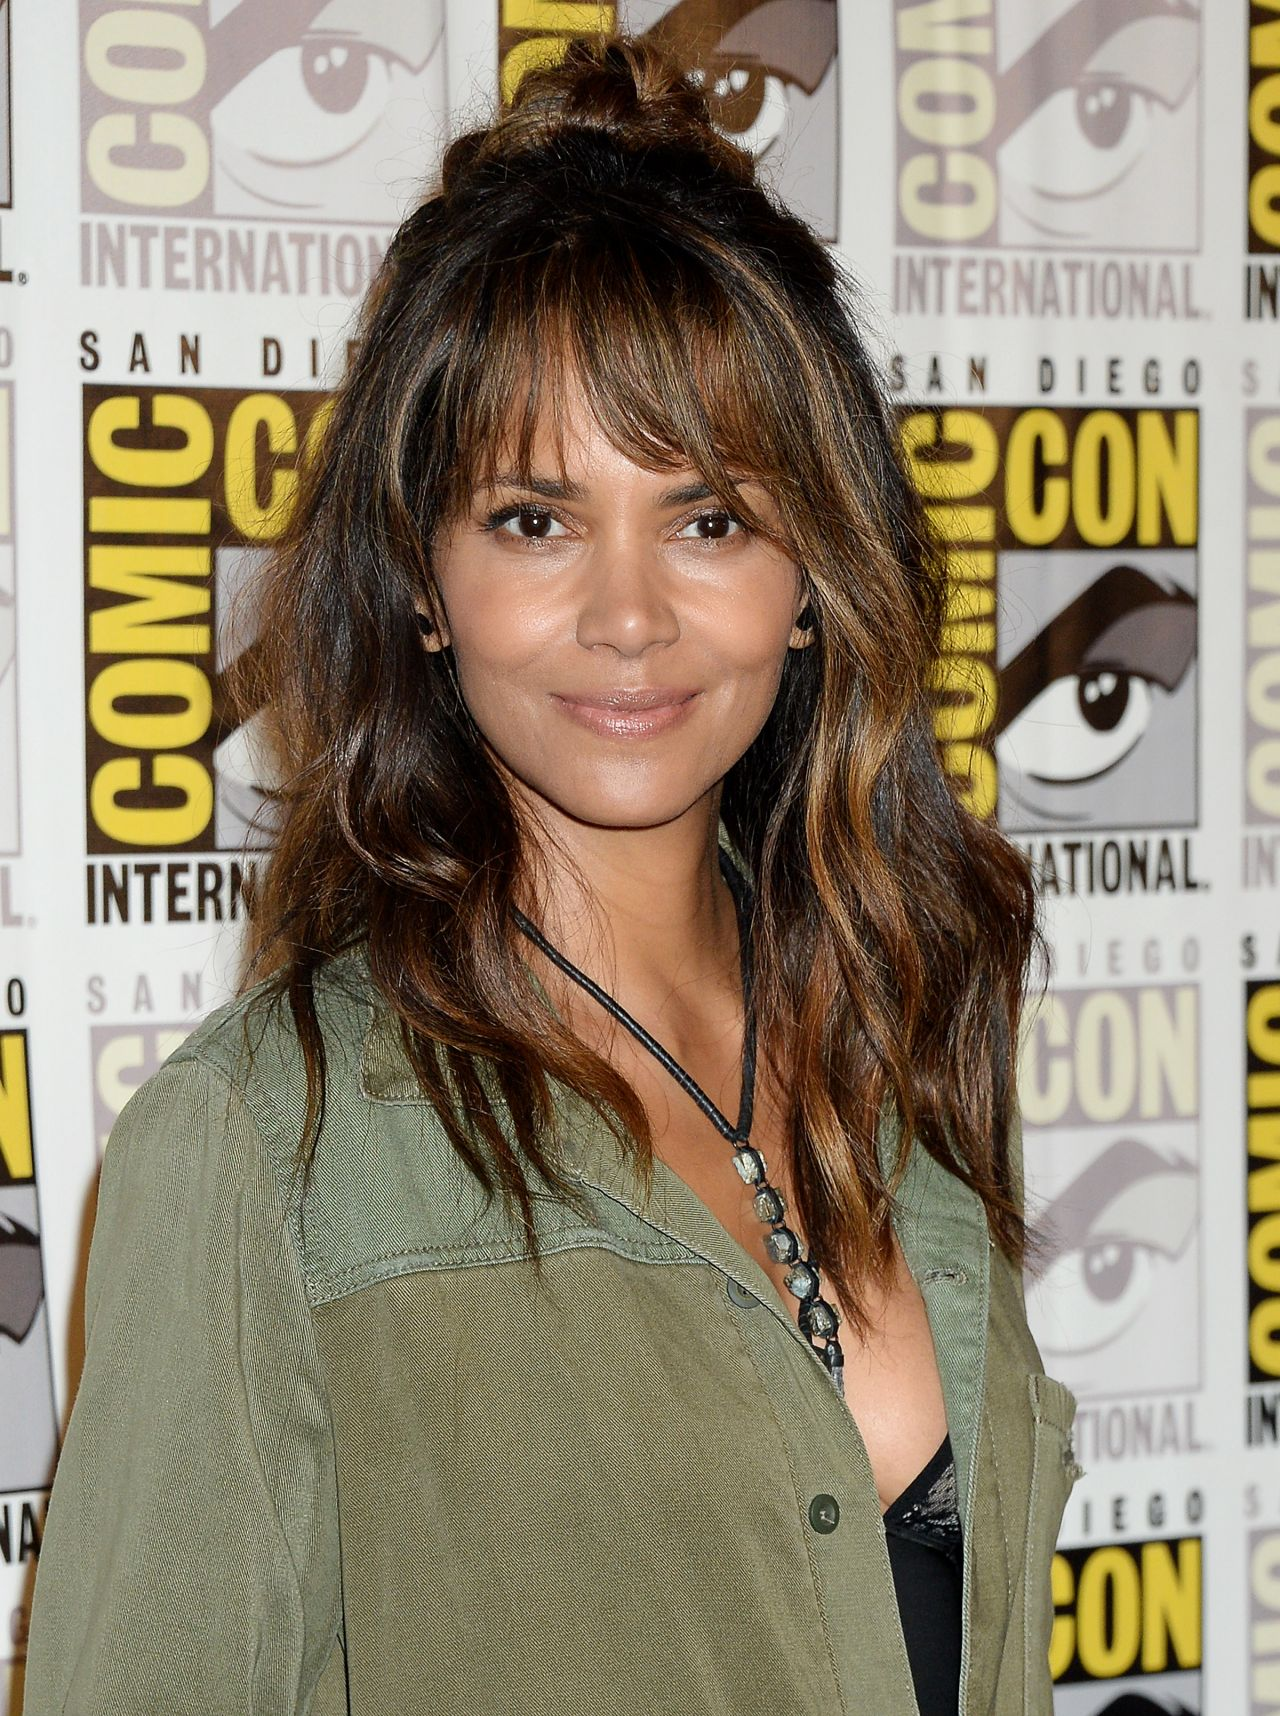 halle berry 20th century fox presentation at comic con in san diego 07202017